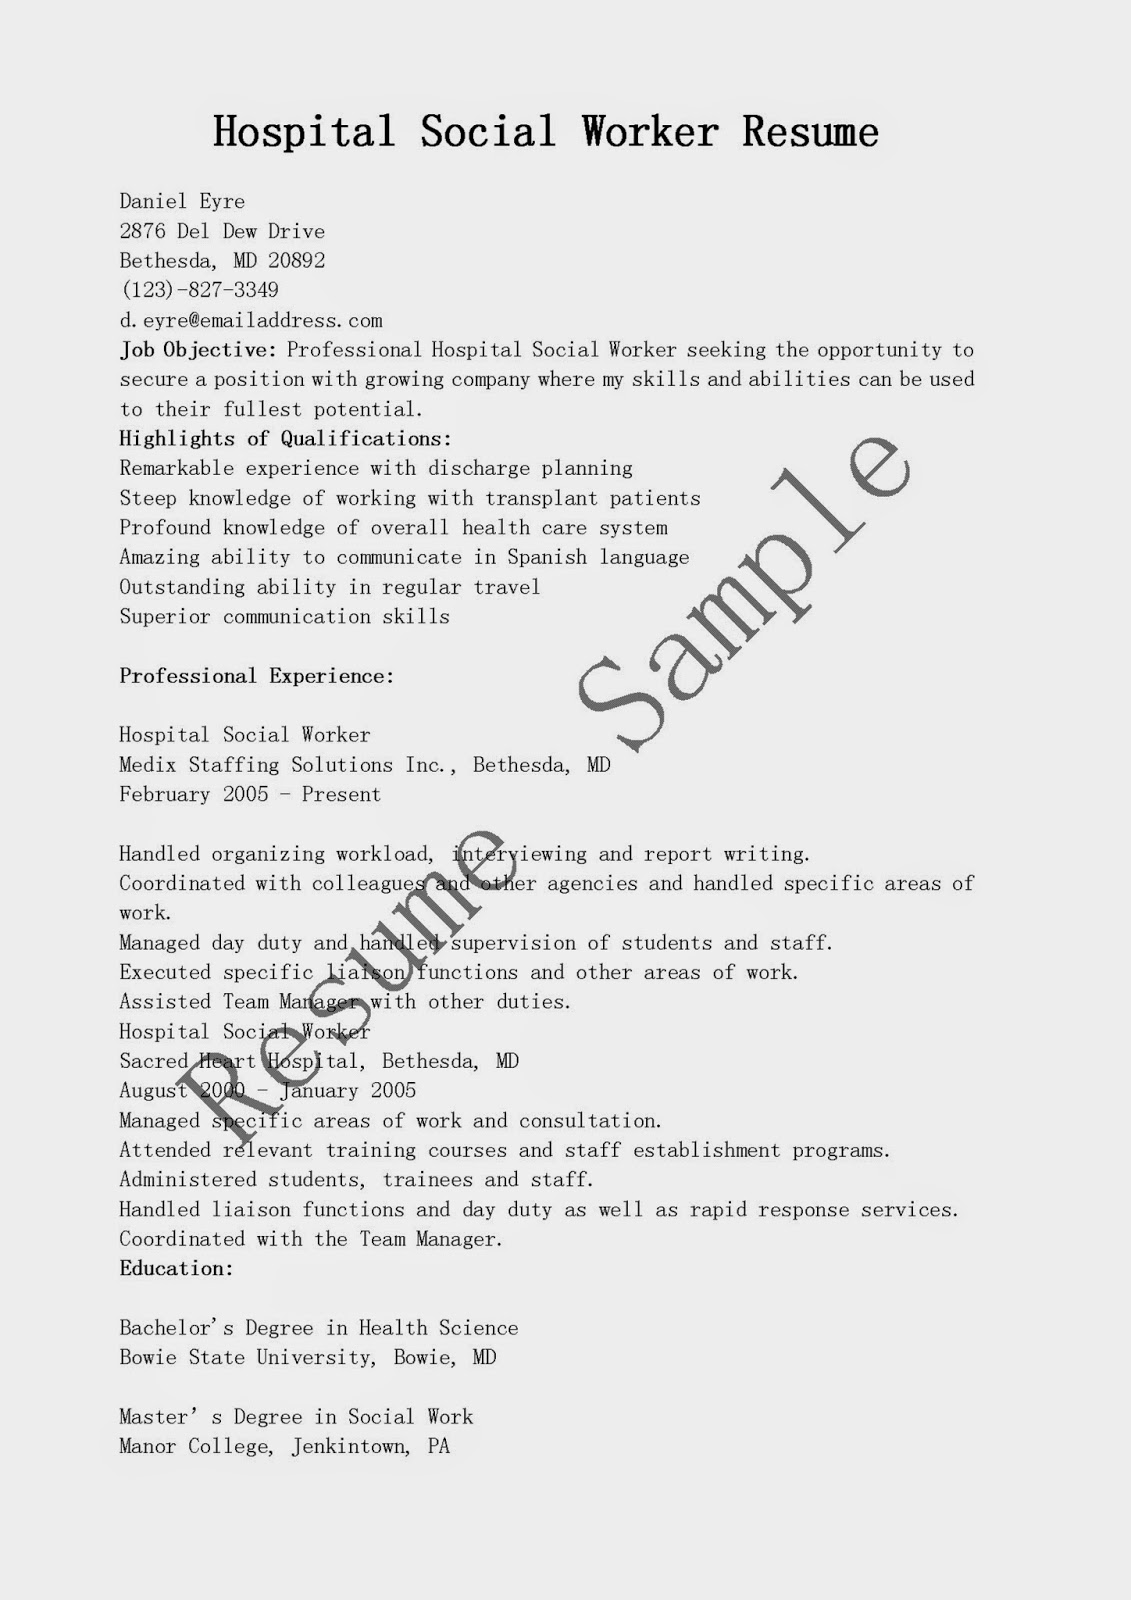 social work resume example professional resume format for freshers free sample resume idea objective for social work resume sample social work resume